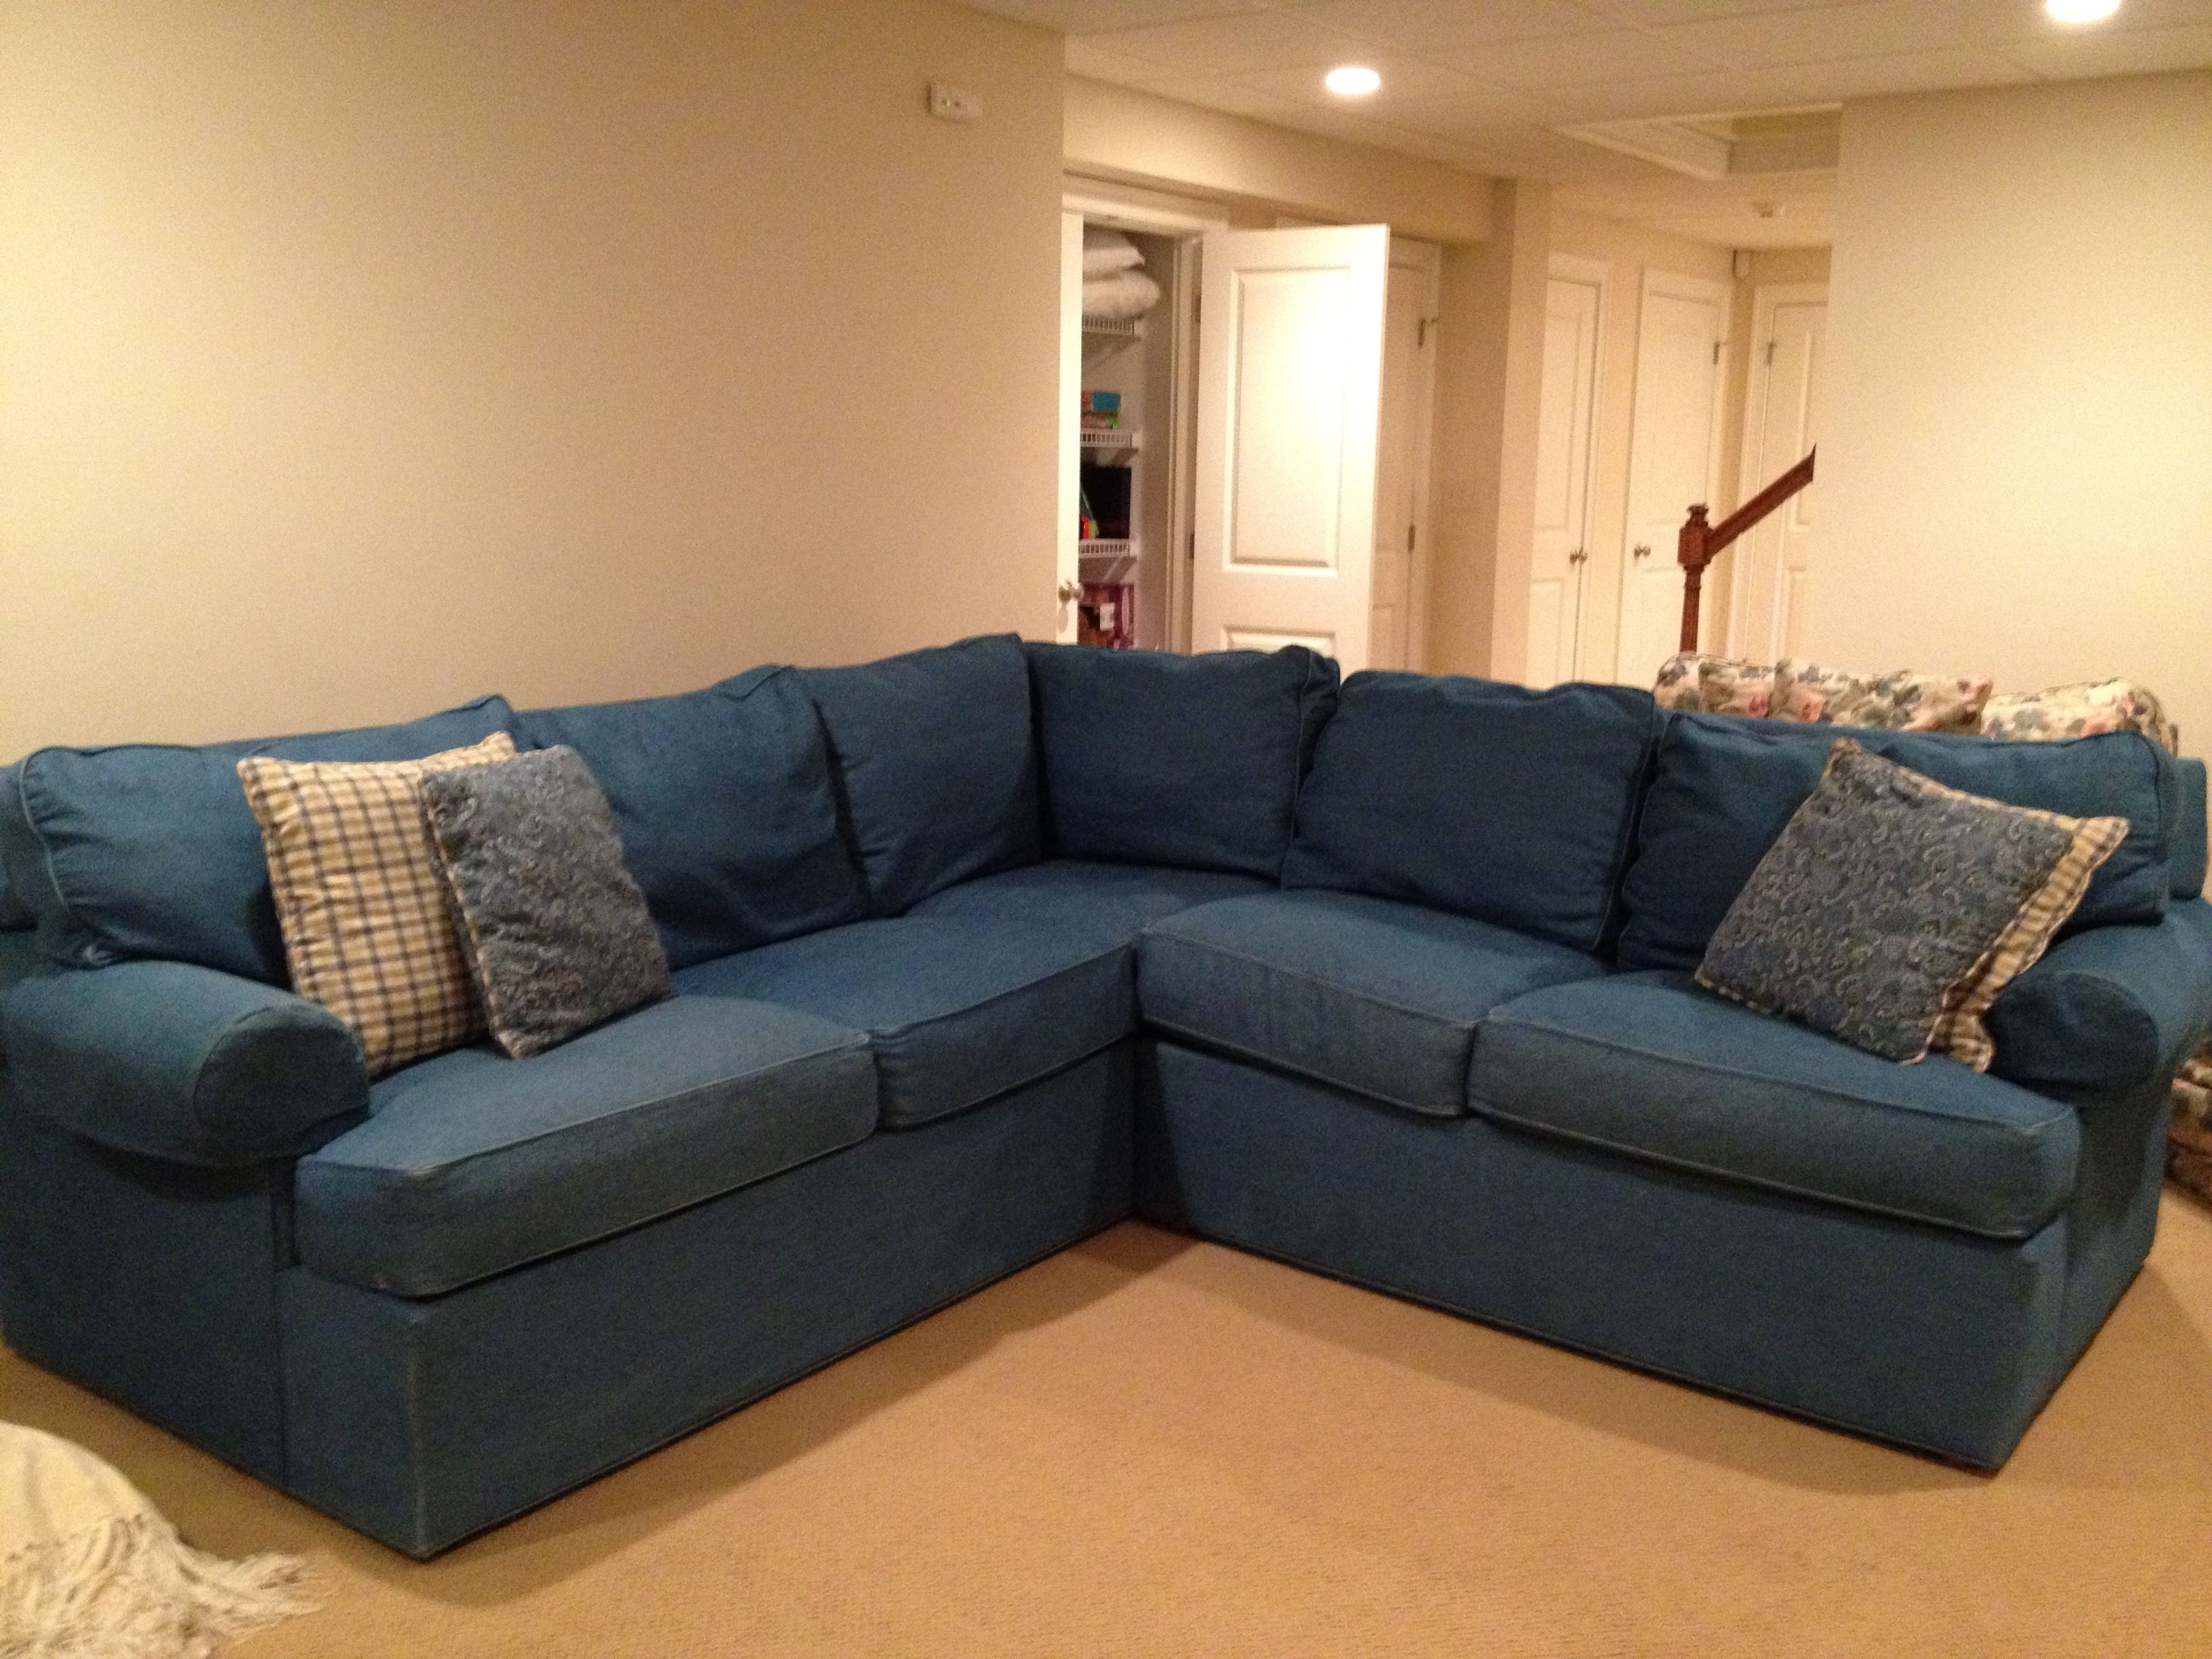 krause sleeper sofa cheep sofas exciting denim sectional design for living room